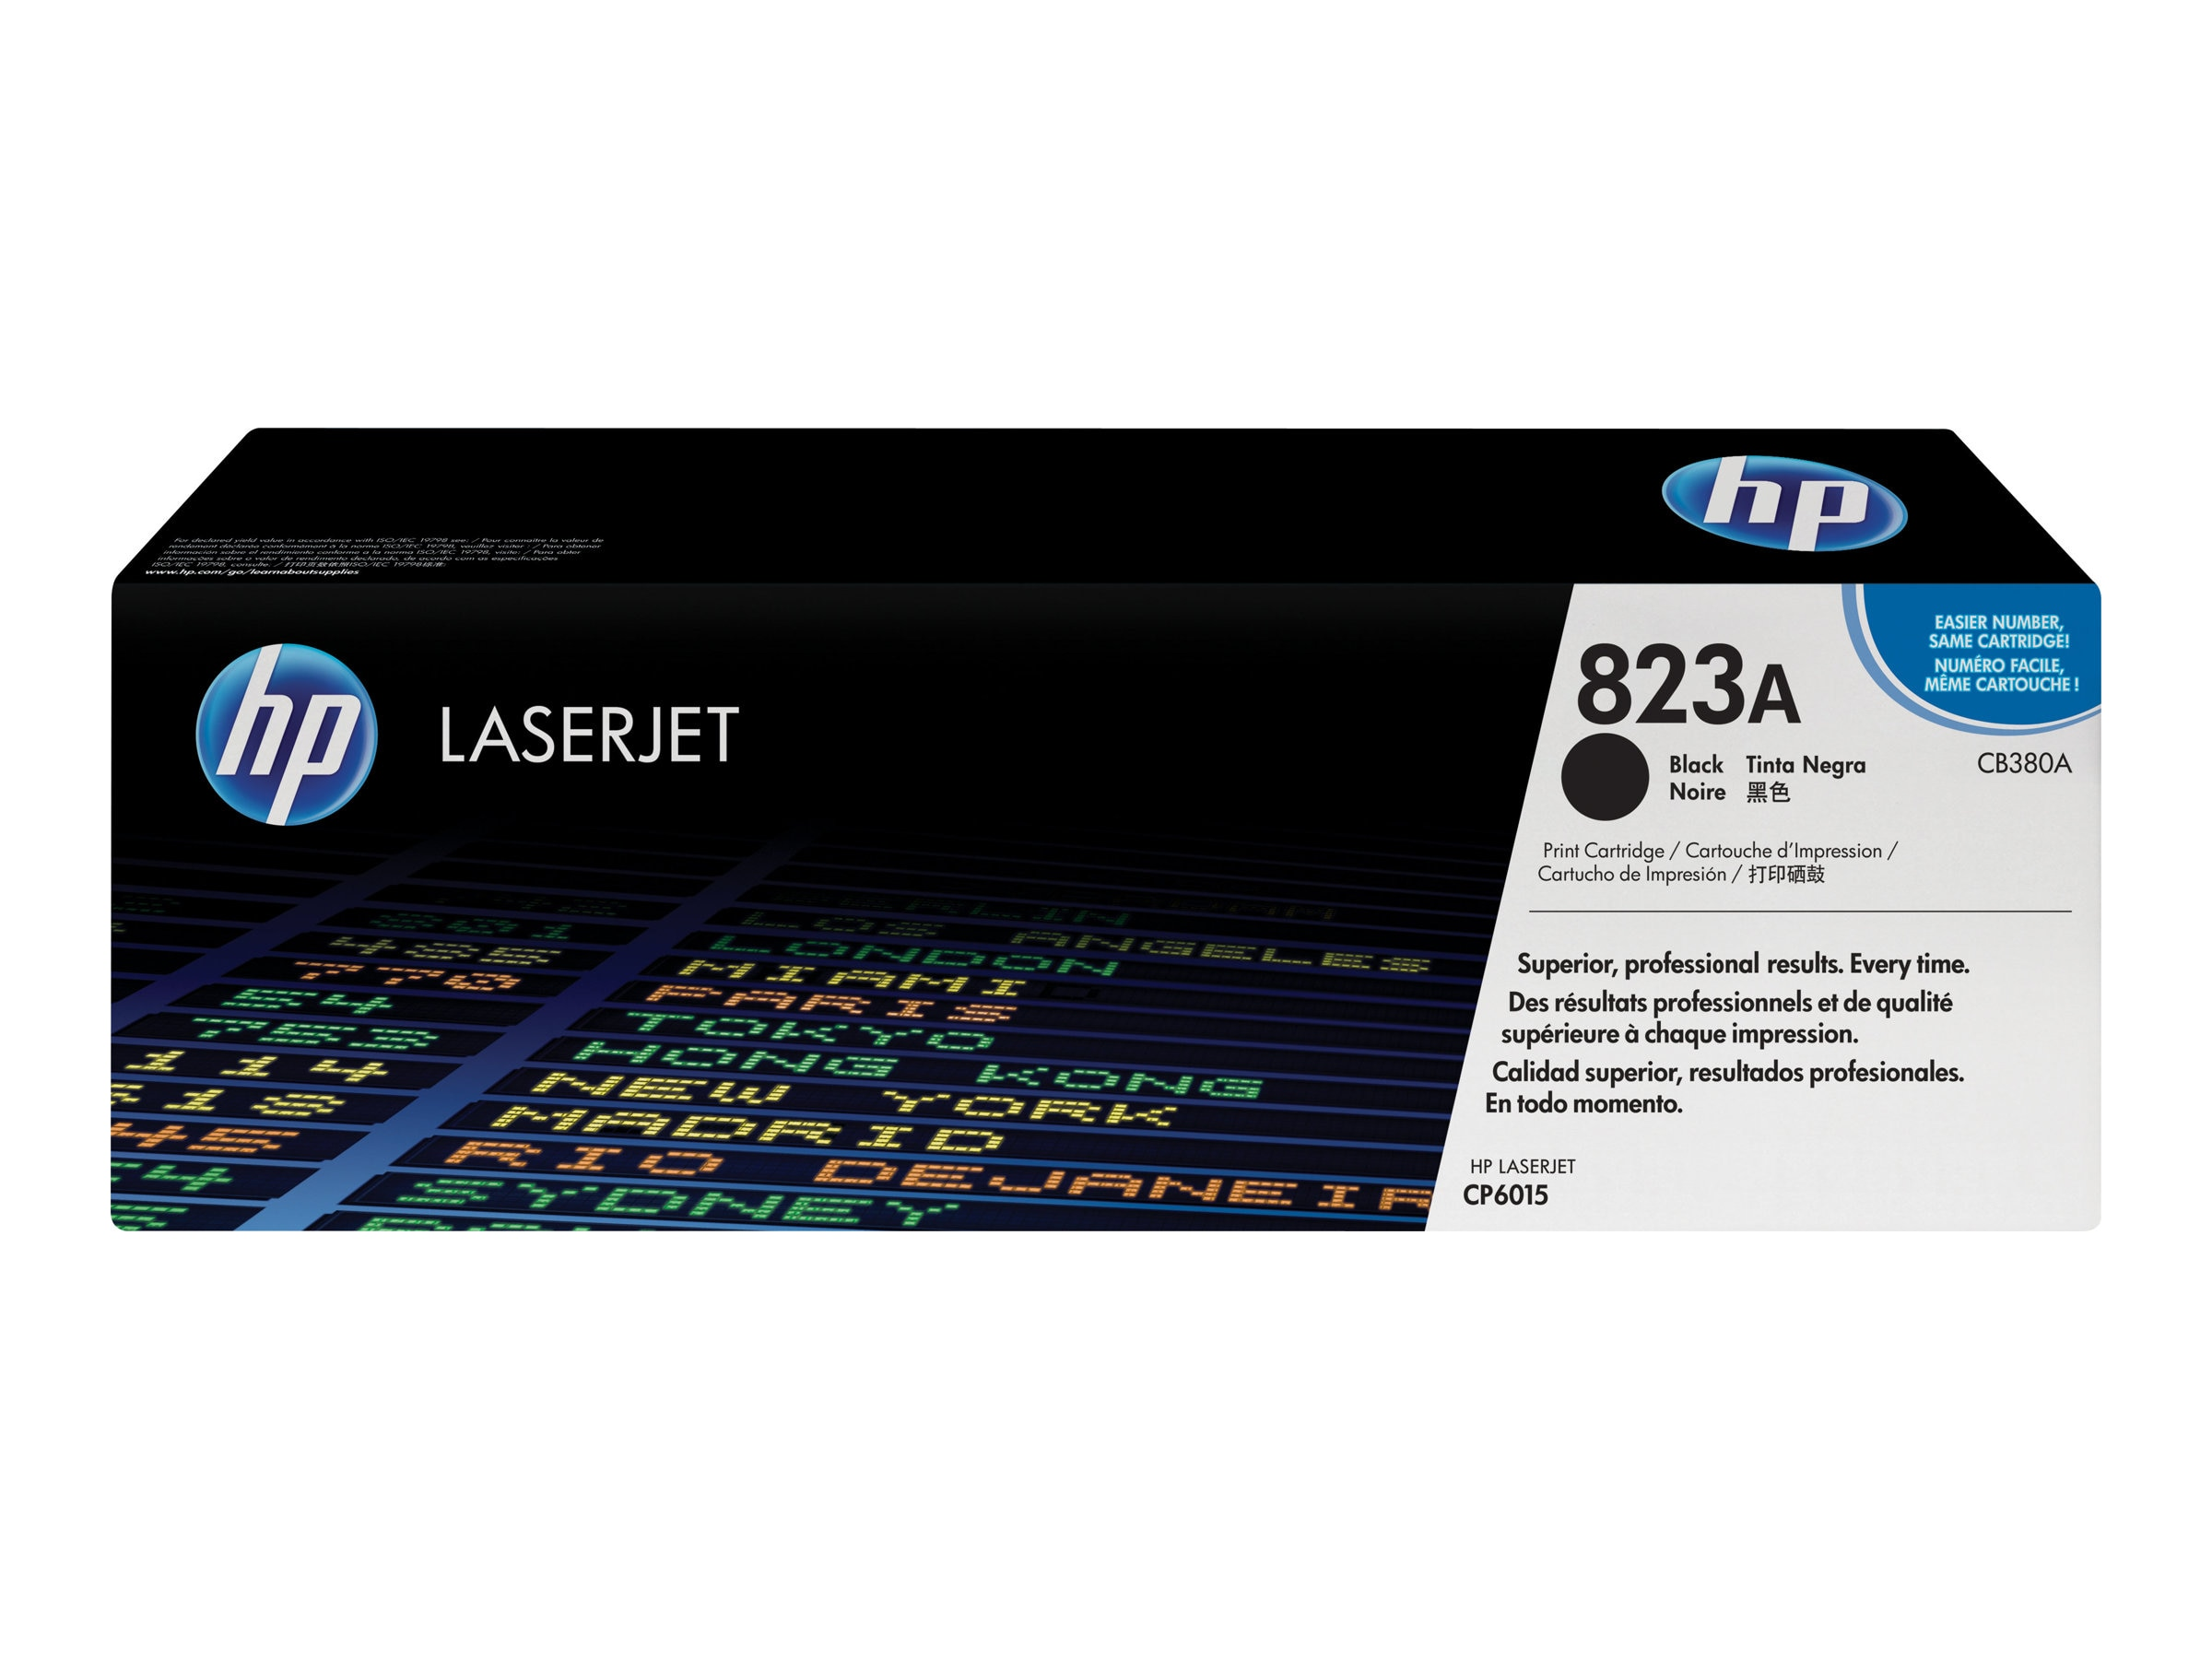 HP 823A (CB380A) Black Original LaserJet Toner Cartridge for HP Color LaserJet CP6015 Printers, CB380A